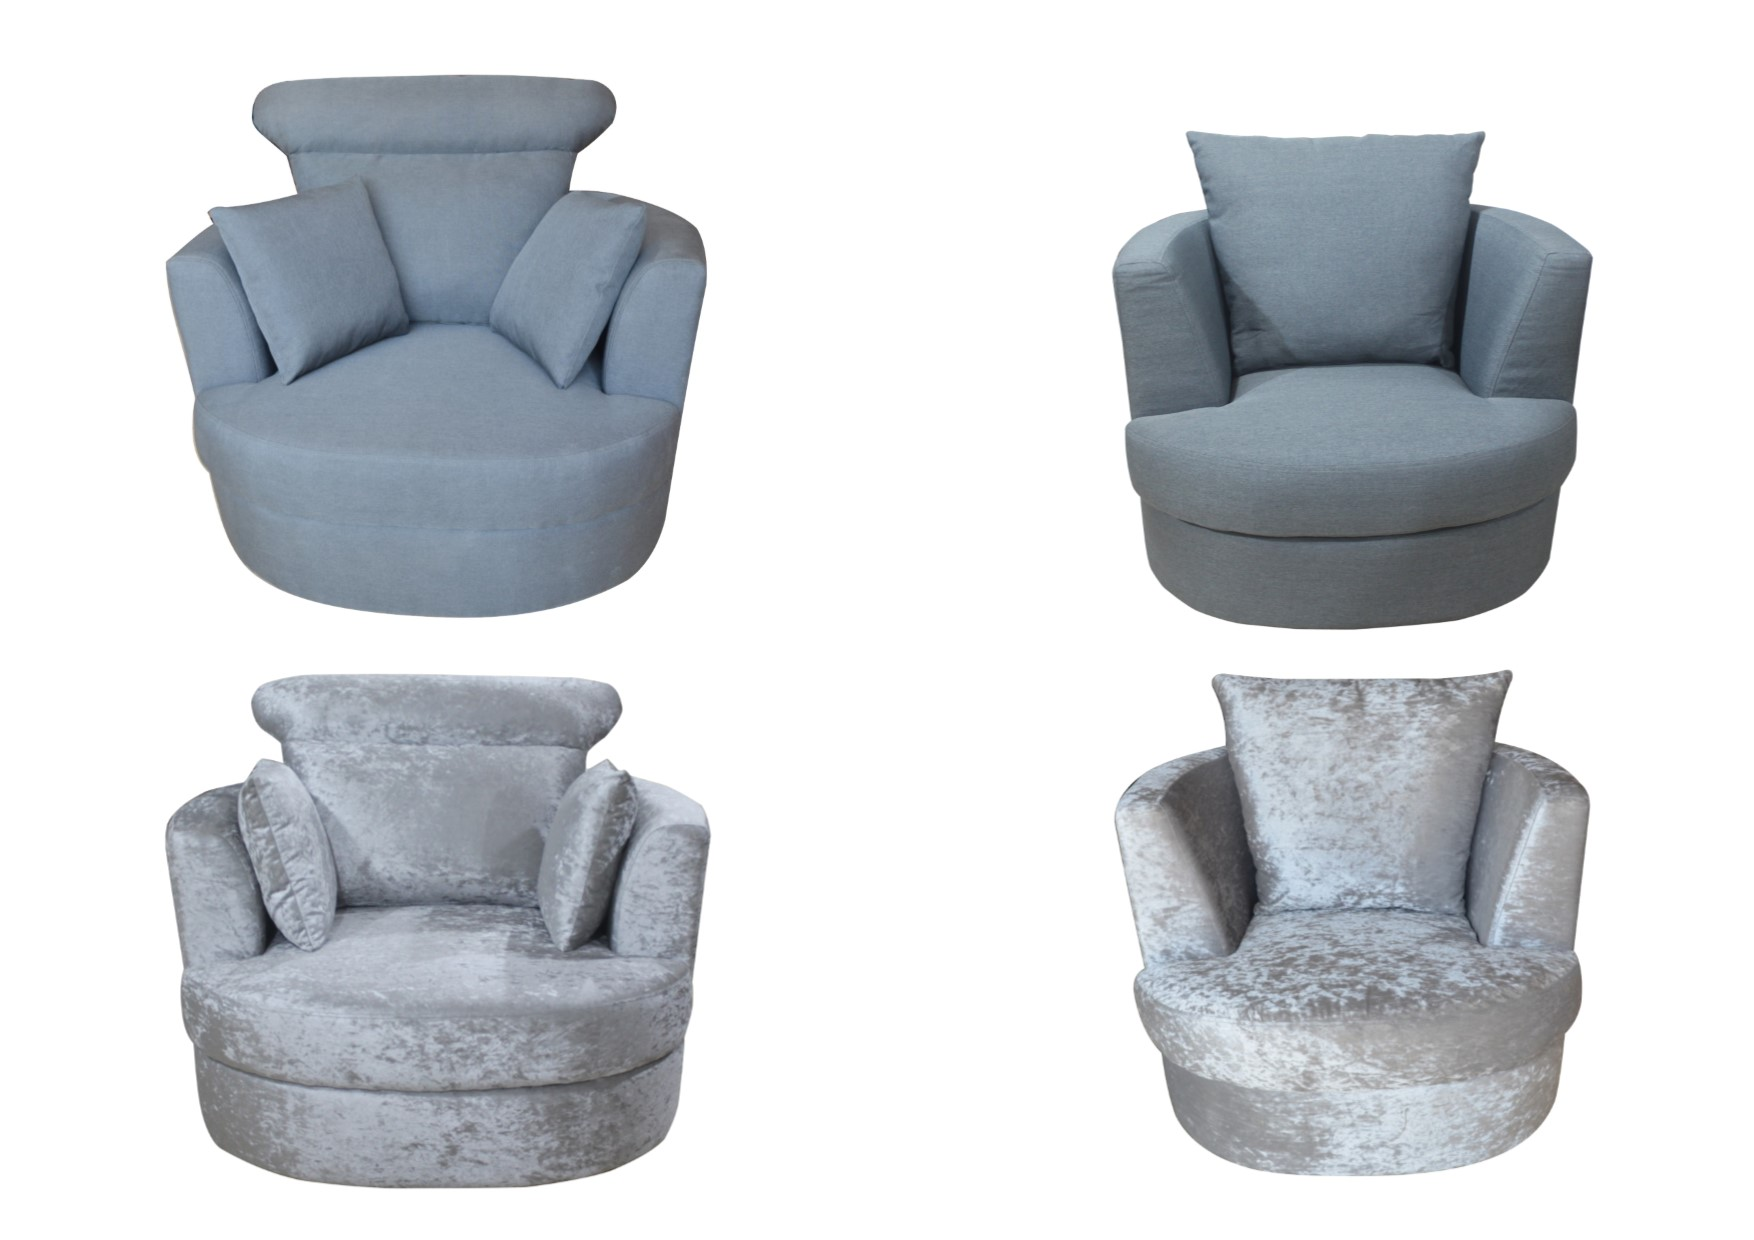 Small Club Chair Details About Lpd Bliss Snug Swivel Chairs Large Or Small Silver Crushed Velvet Grey Linen